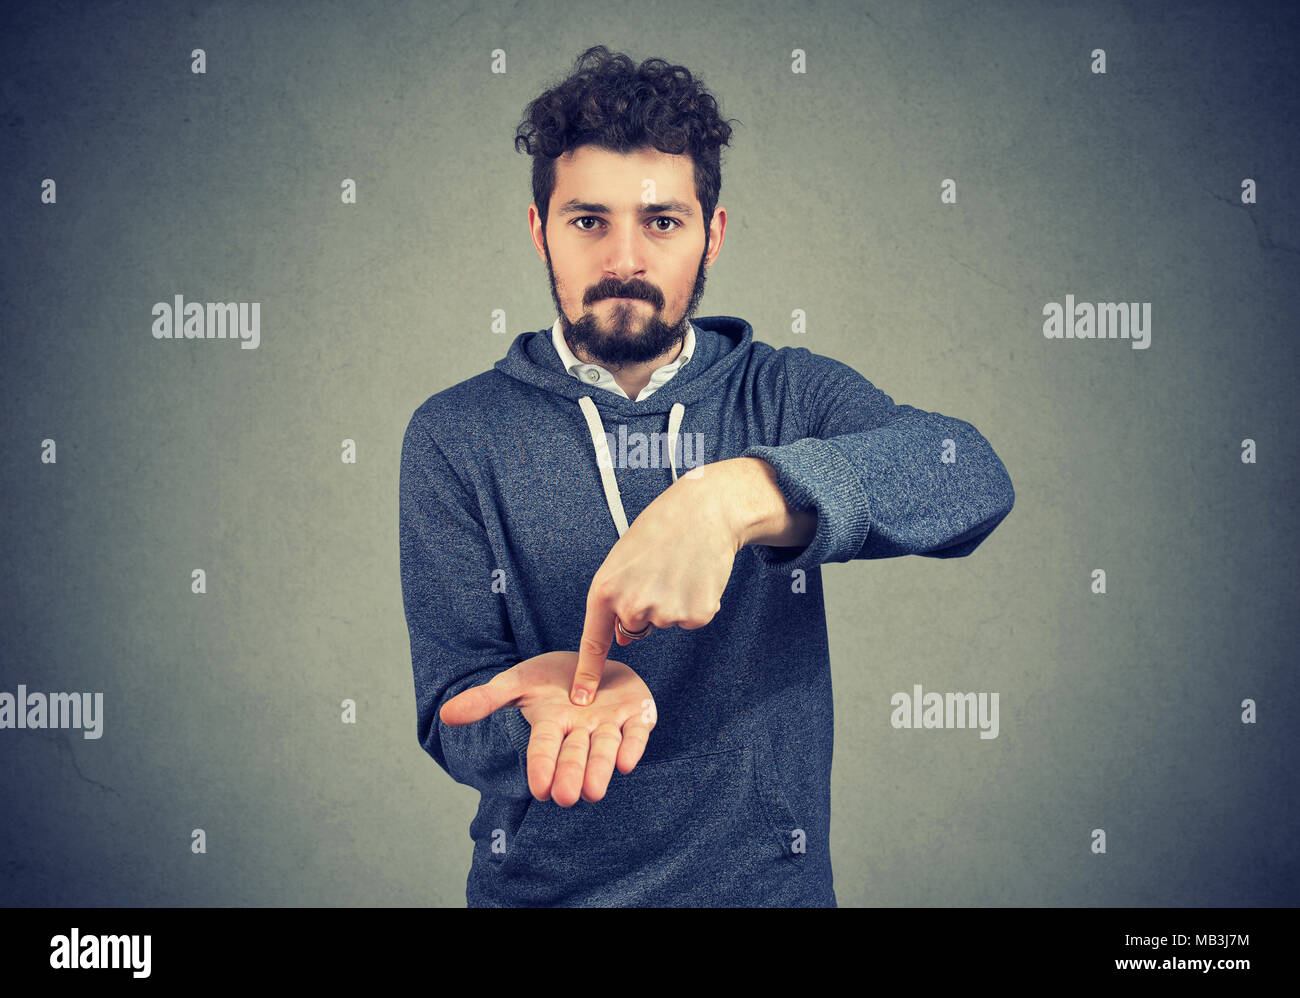 Young serious hipster man asking for more money to pay back debt - Stock Image